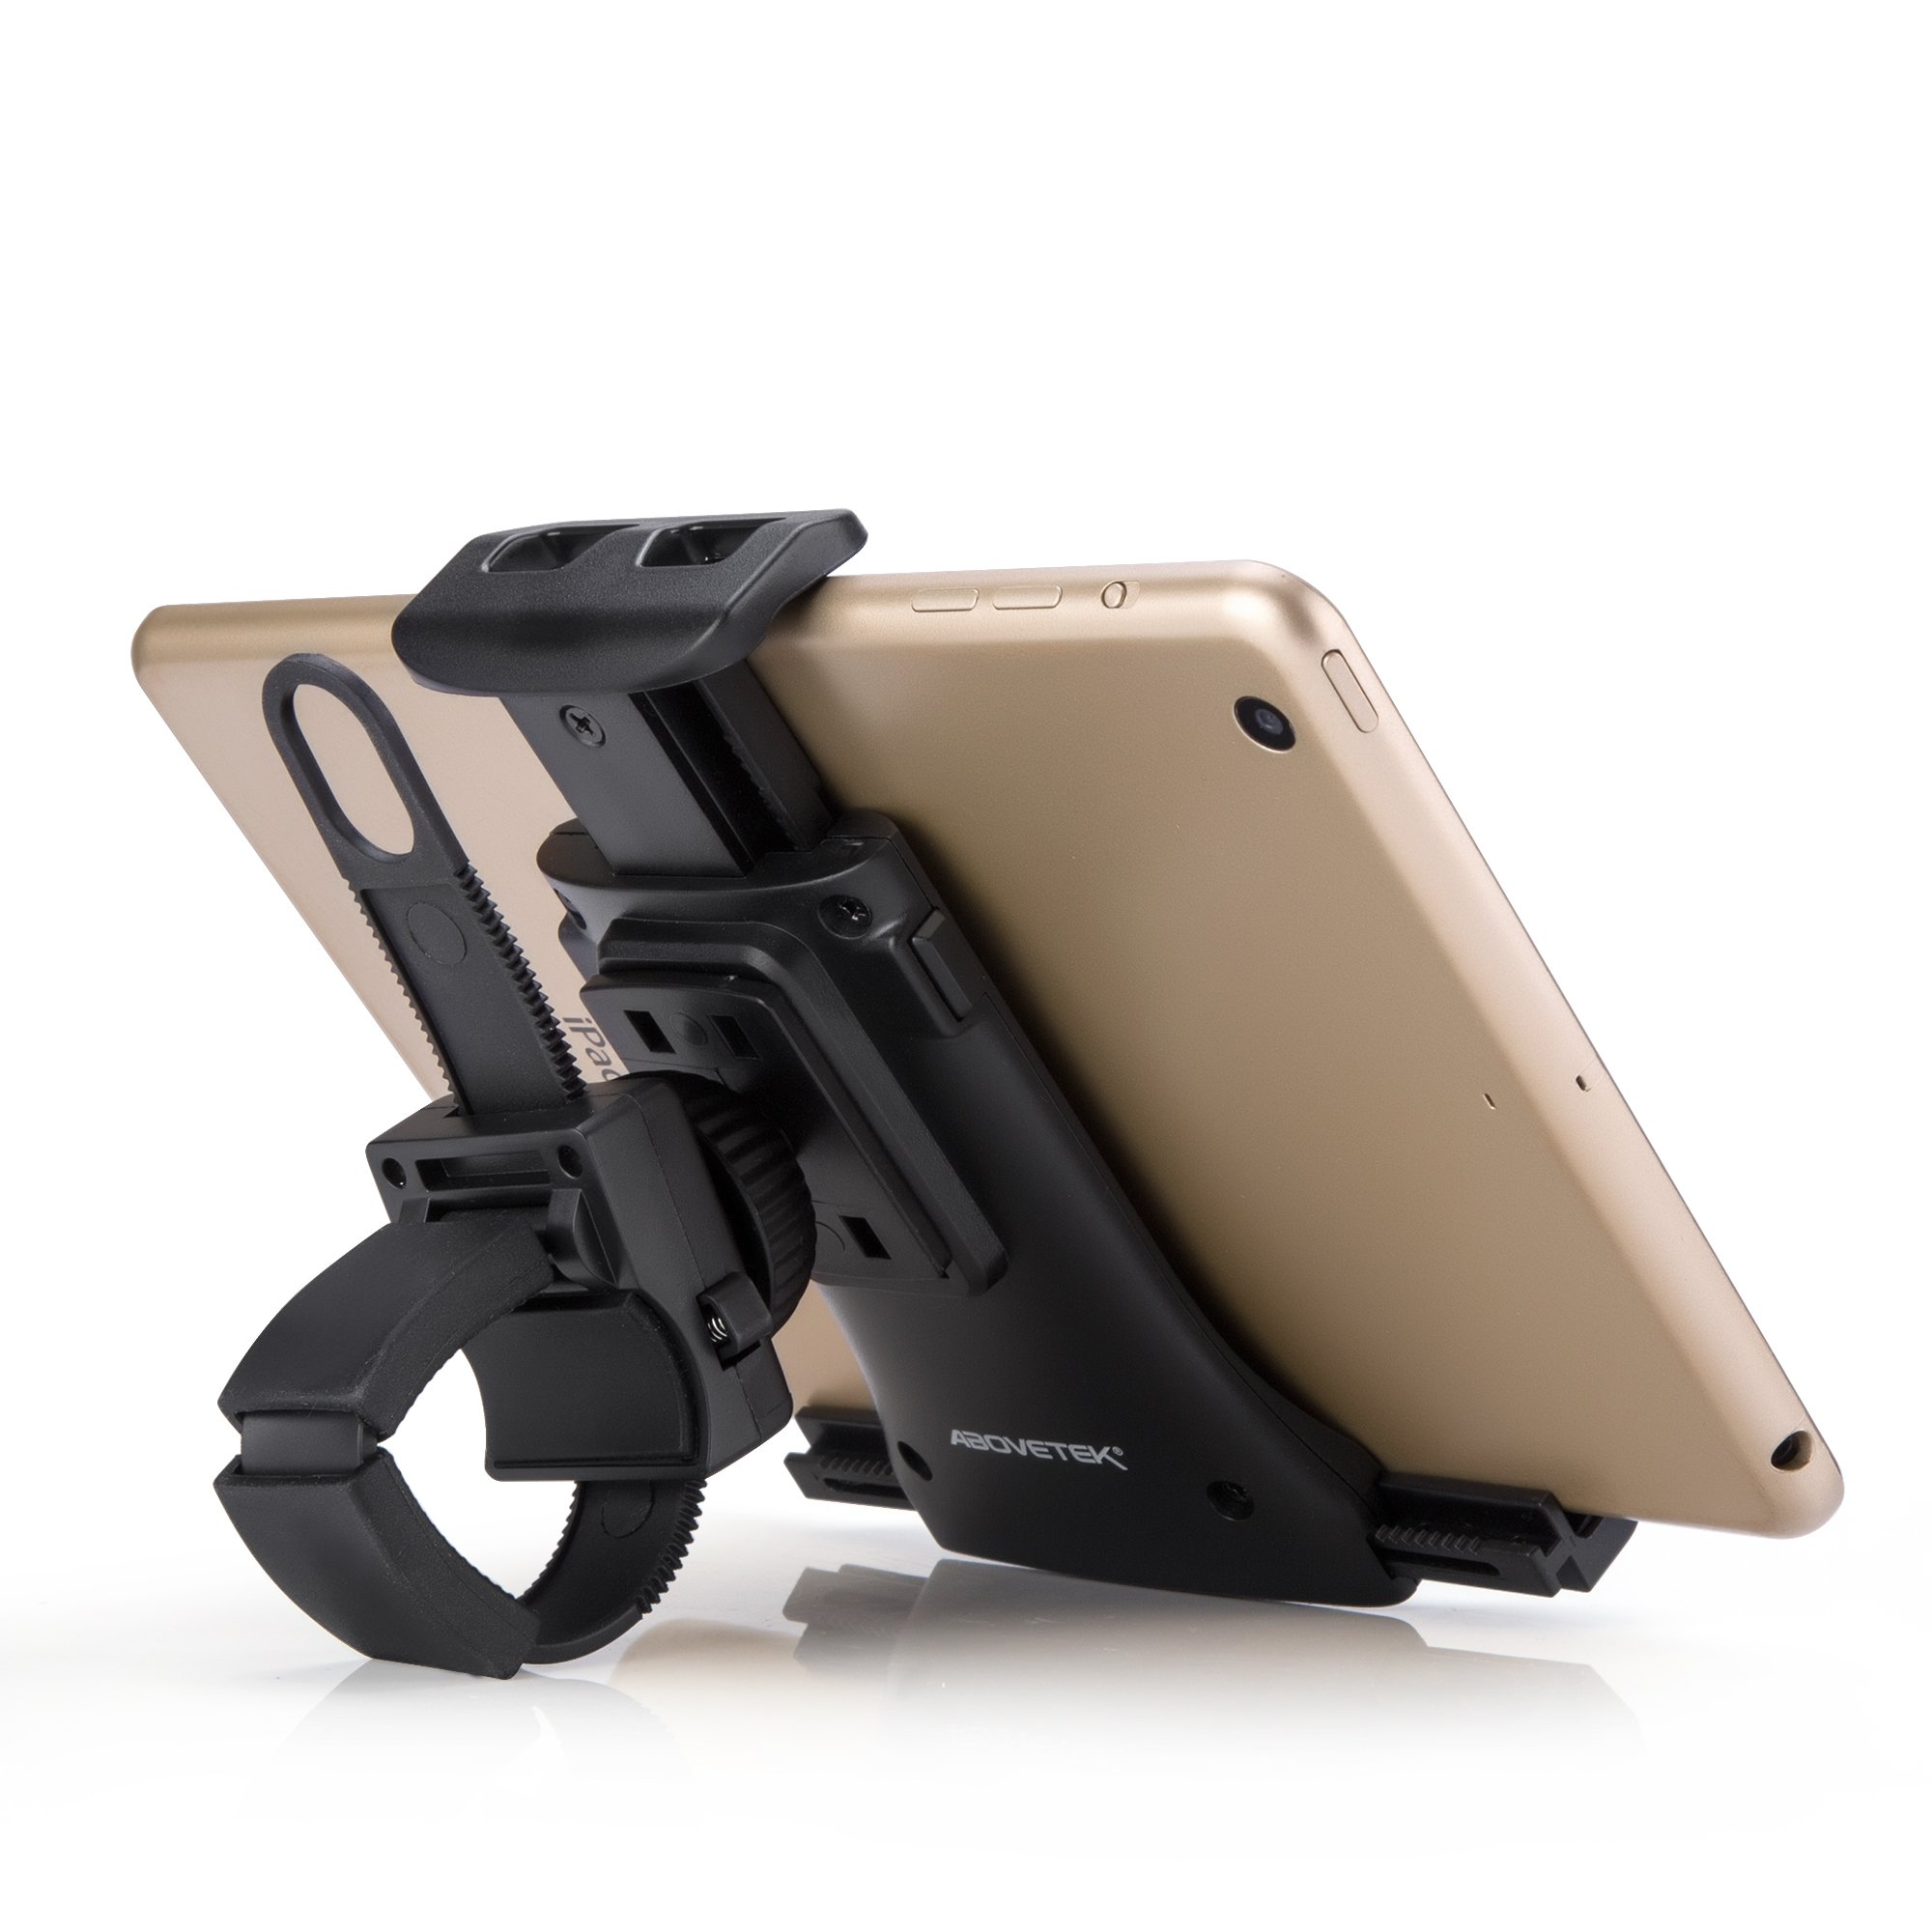 AboveTEK All-In-One Cycling Bike iPad/iPhone Mount, Portable Compact Tablet Holder for Indoor Gym Handlebar on Exercise Bikes & Treadmills, Adjustable 360° Swivel Stand For 3.5-12'' Tablets/Cell Phones by AboveTEK (Image #9)